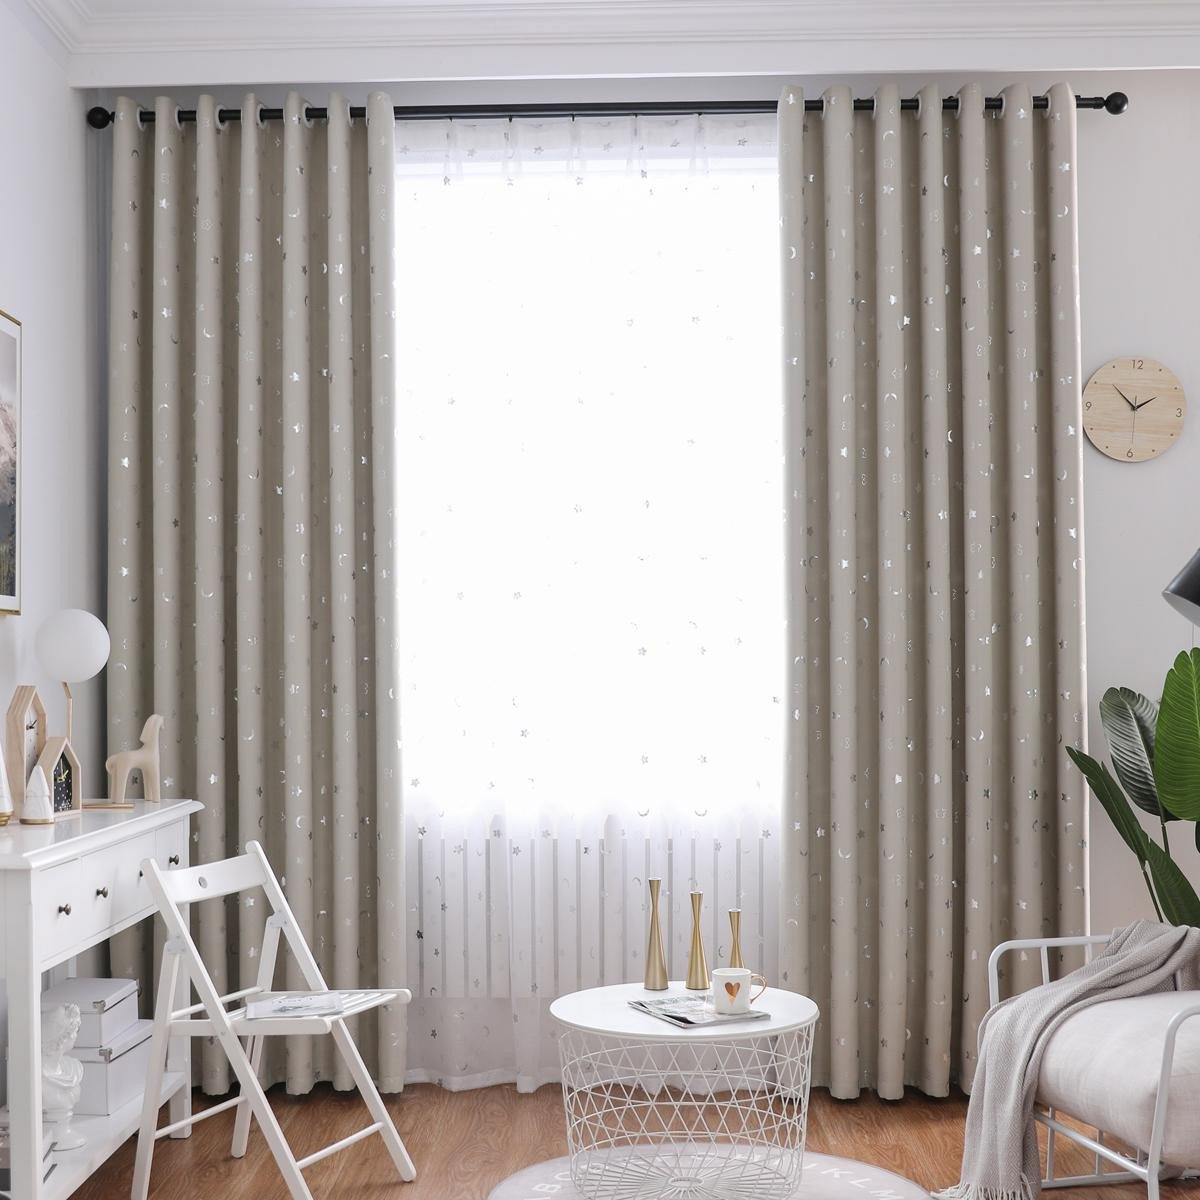 Blackout Drapes for Bedroom Best Of 2019 Summer Hot Sale Small Star Moon Blackout Curtain for Living Room Bedroom Kid S Room From Gyrotex $5 02